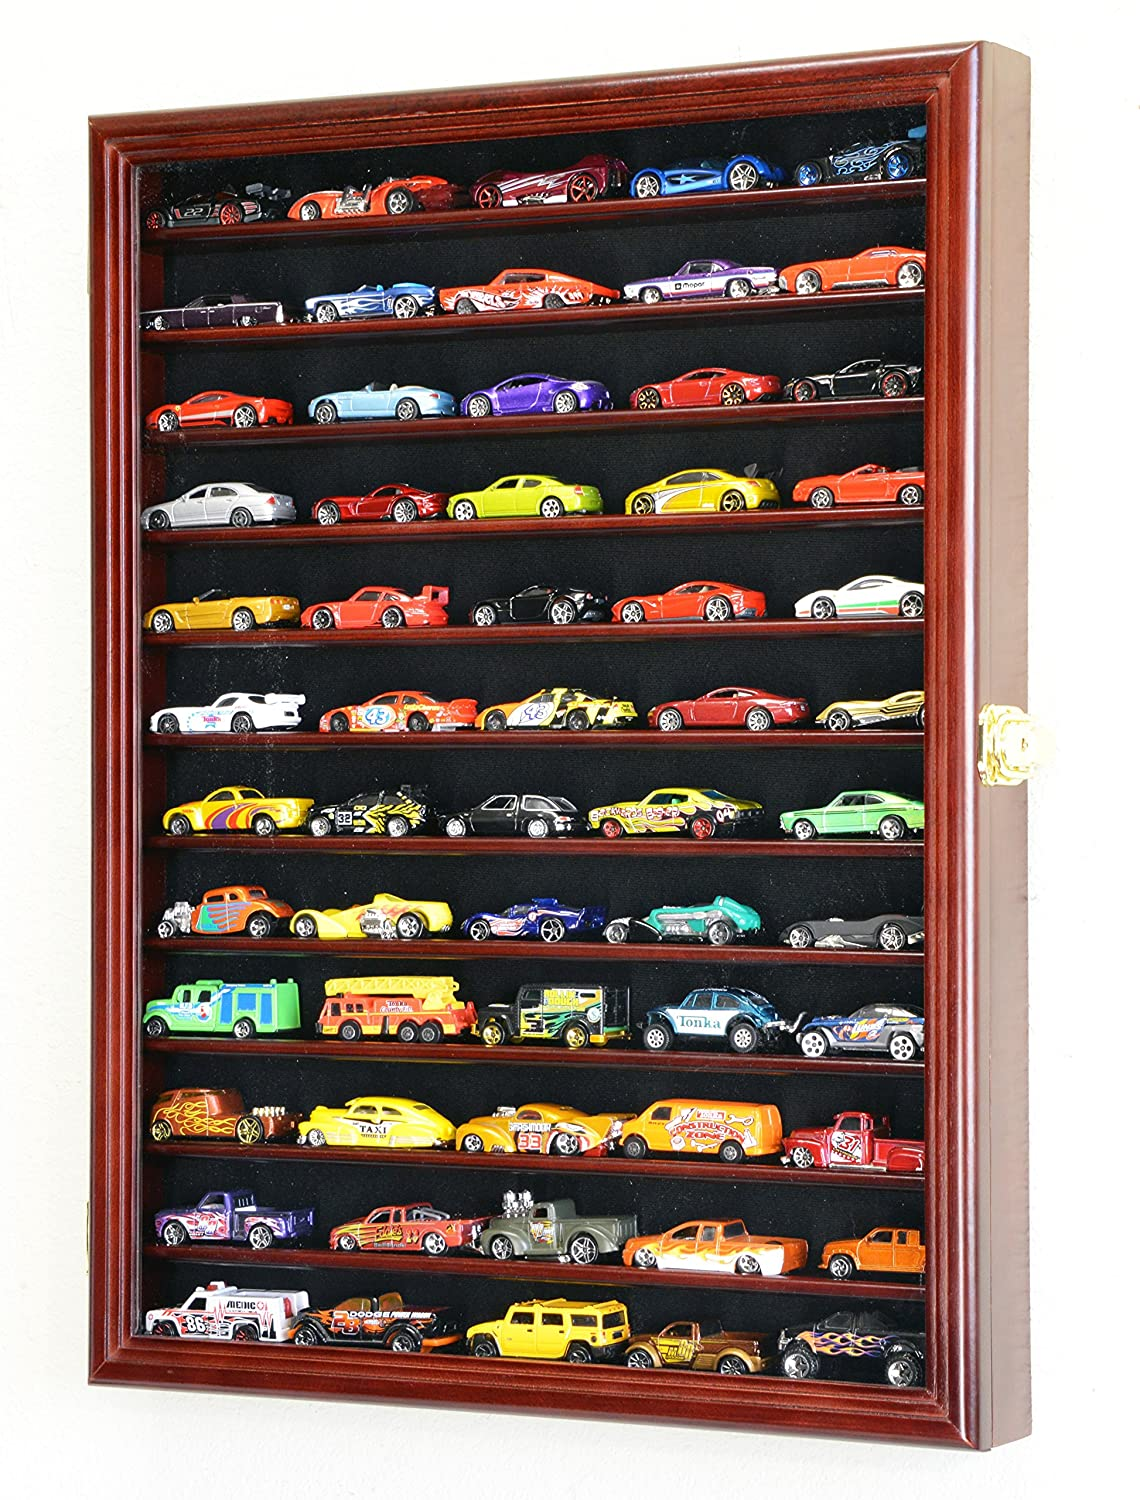 Amazon.com Hot Wheels Matchbox 1/64 scale Diecast Display Case Cabinet Wall Rack w/UV Protection -Black Toys \u0026 Games  sc 1 st  Amazon.com & Amazon.com: Hot Wheels Matchbox 1/64 scale Diecast Display Case ...